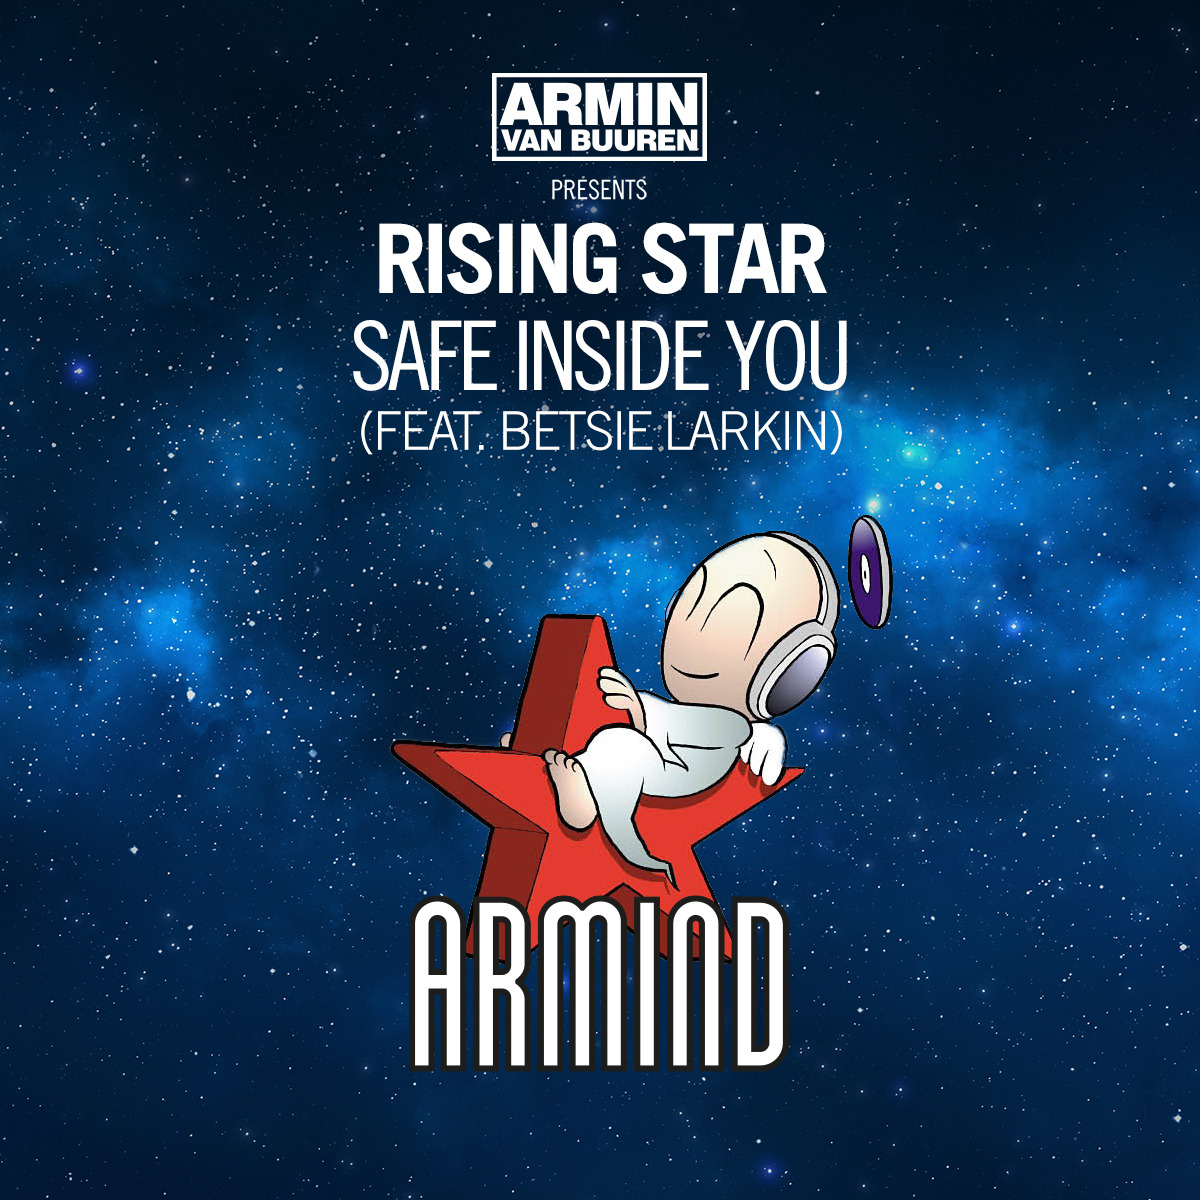 Armin van Buuren pres. Rising Star - Safe Inside You